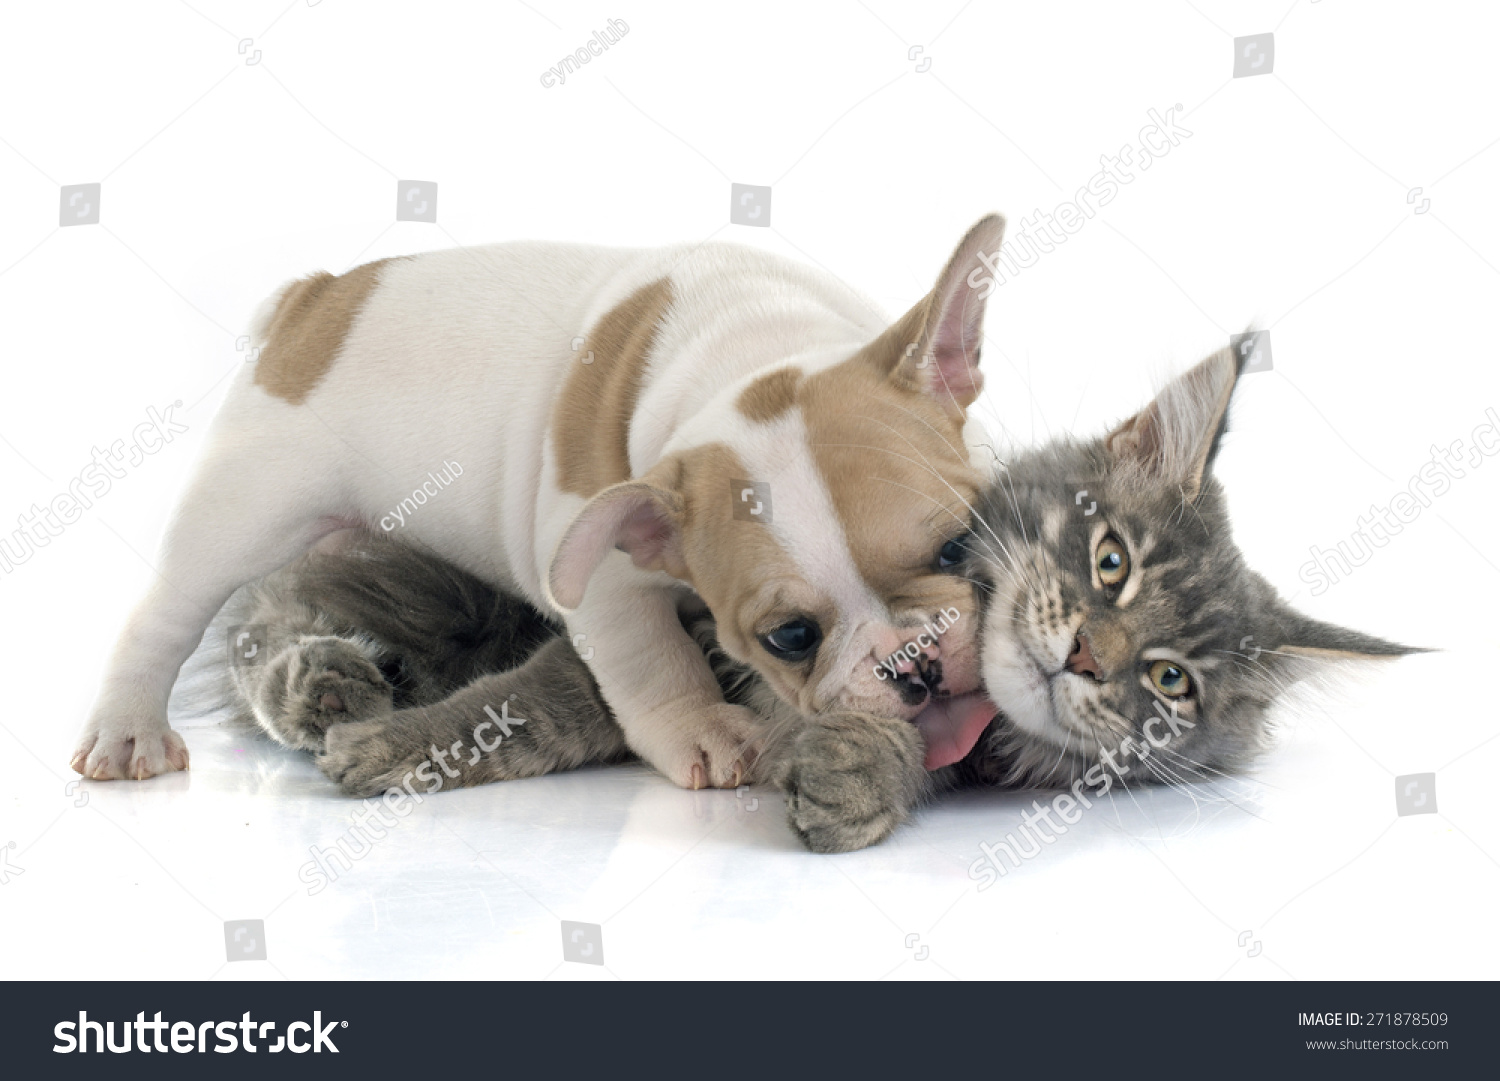 french bulldog maine puppy french bulldog and maine coon cat in front of white 734